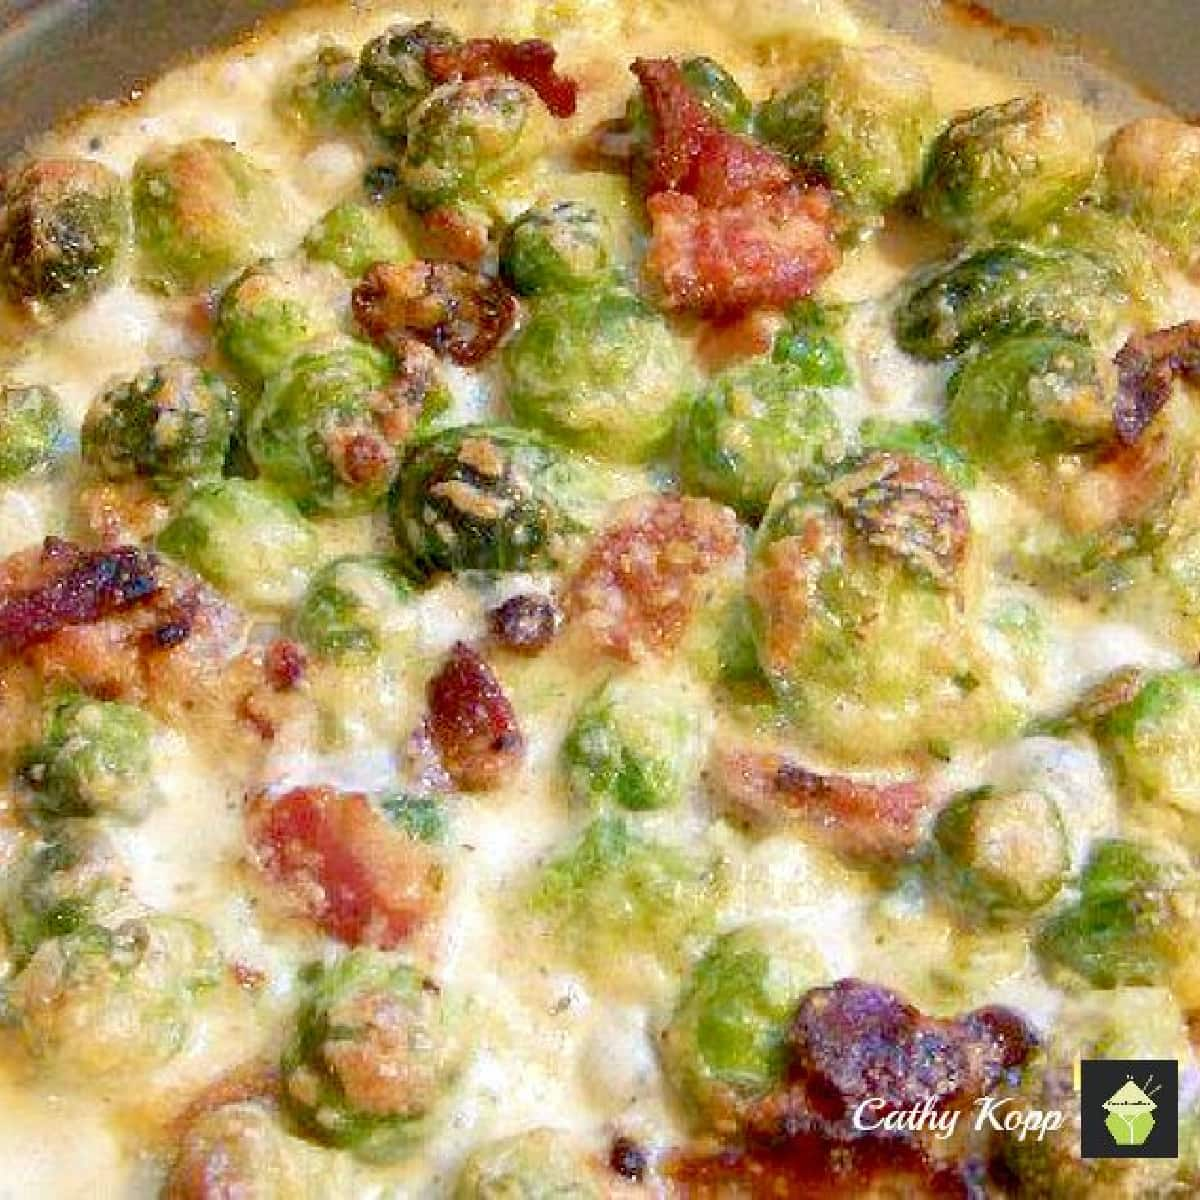 Bacon and Brussels Sprouts GratinP